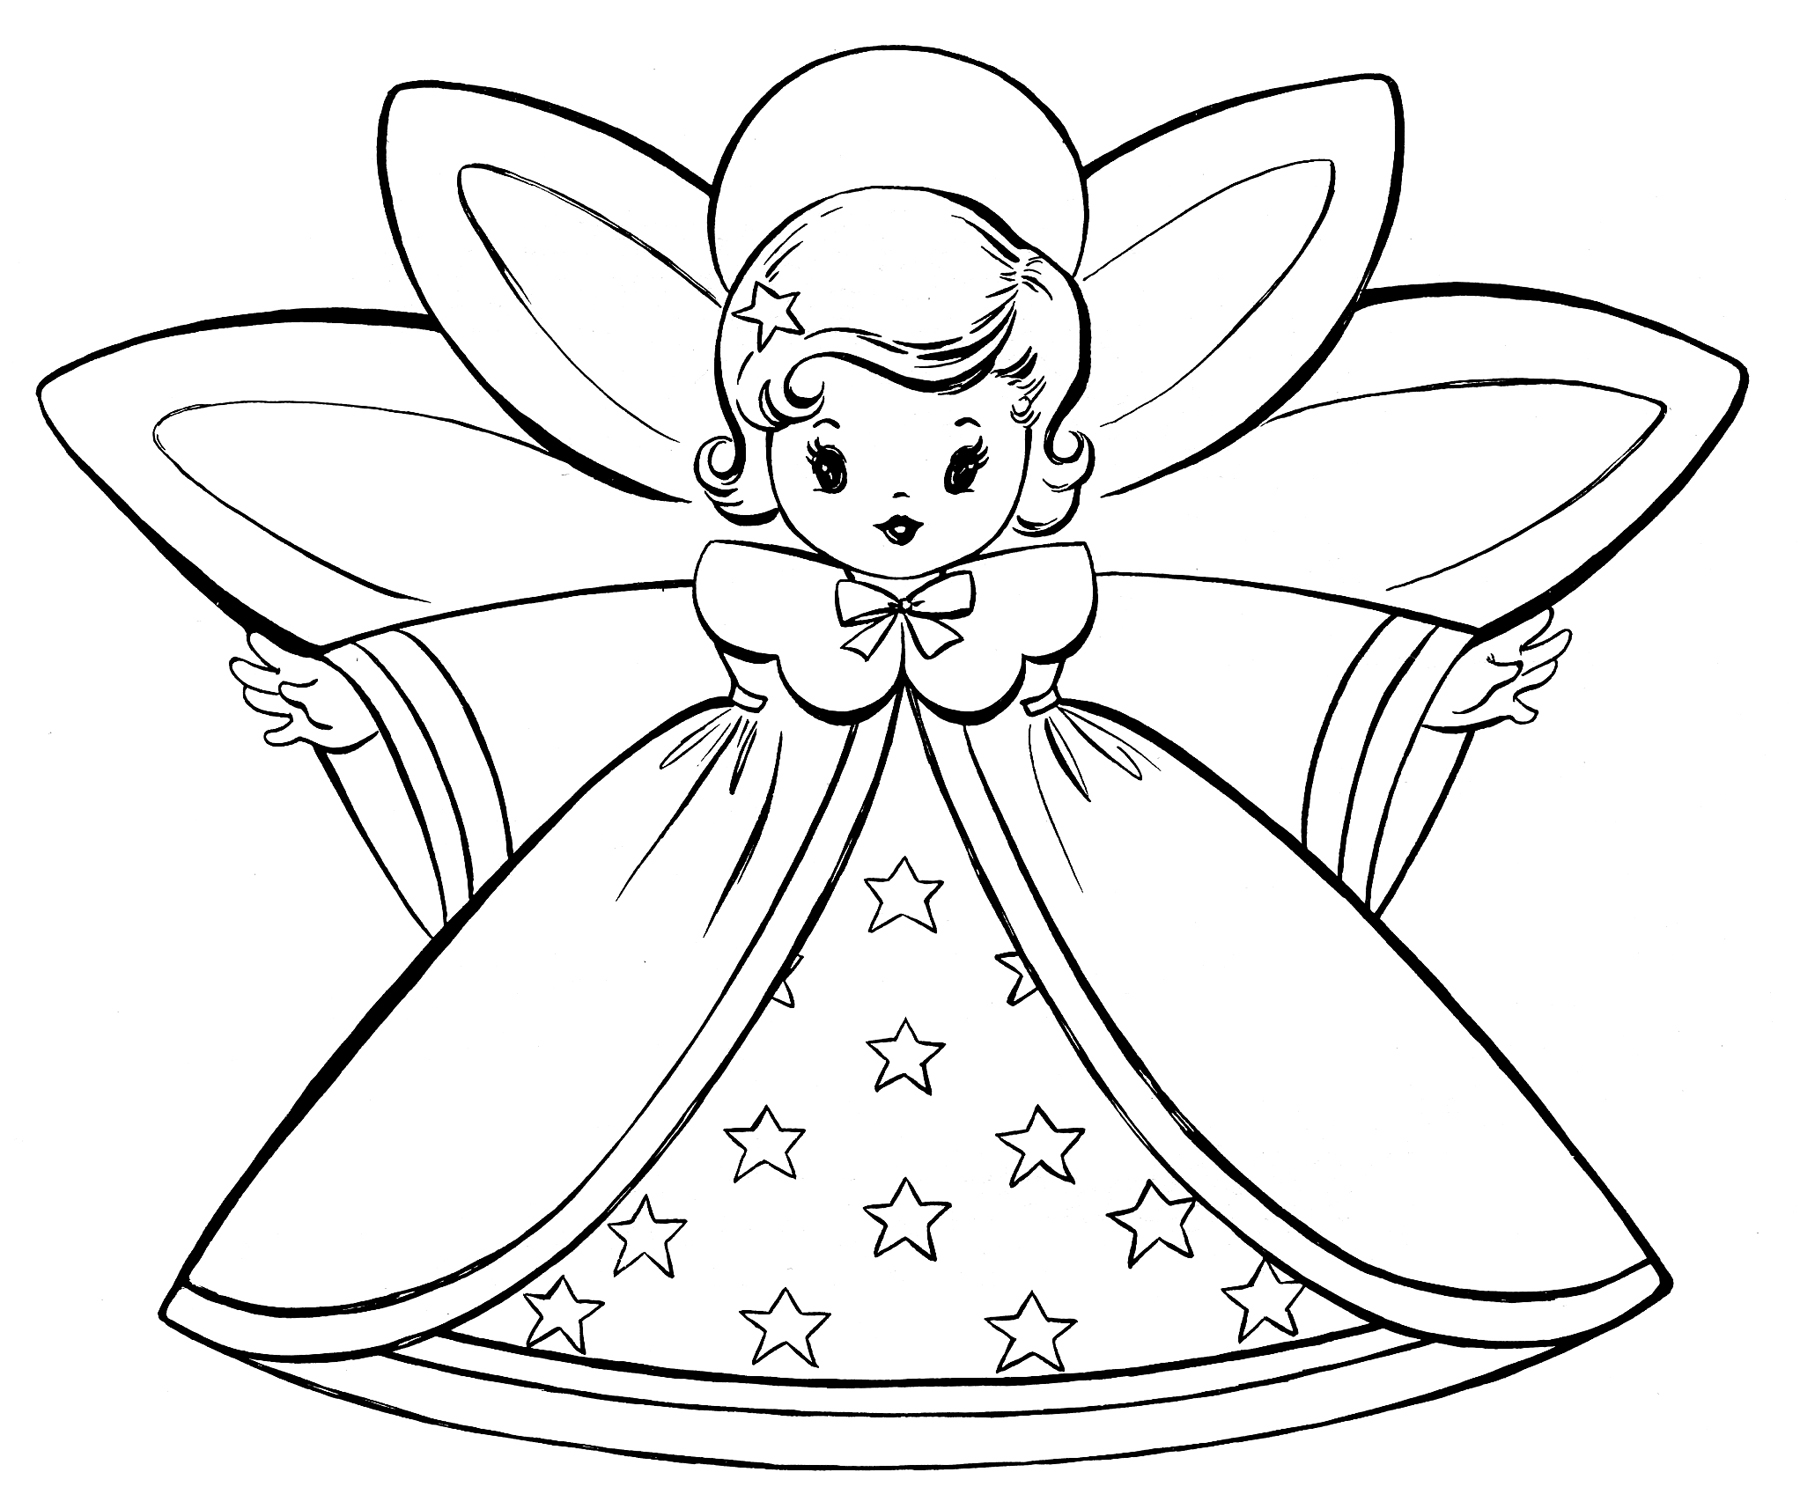 coloring pages christams - photo#39